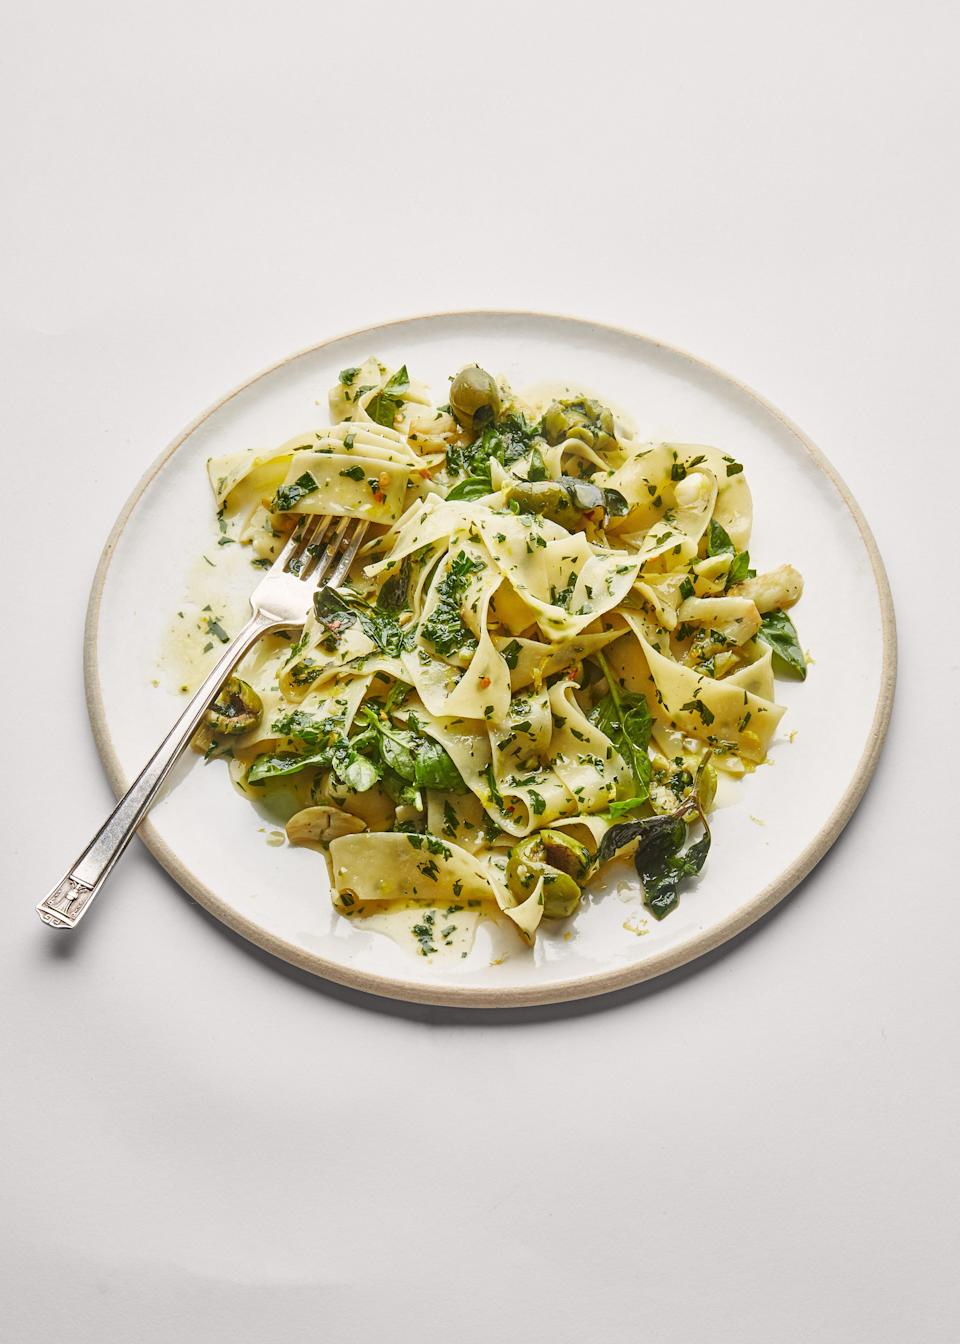 """<a href=""""https://www.bonappetit.com/recipe/herby-pasta-with-garlic-and-green-olives?mbid=synd_yahoo_rss"""" rel=""""nofollow noopener"""" target=""""_blank"""" data-ylk=""""slk:See recipe."""" class=""""link rapid-noclick-resp"""">See recipe.</a>"""